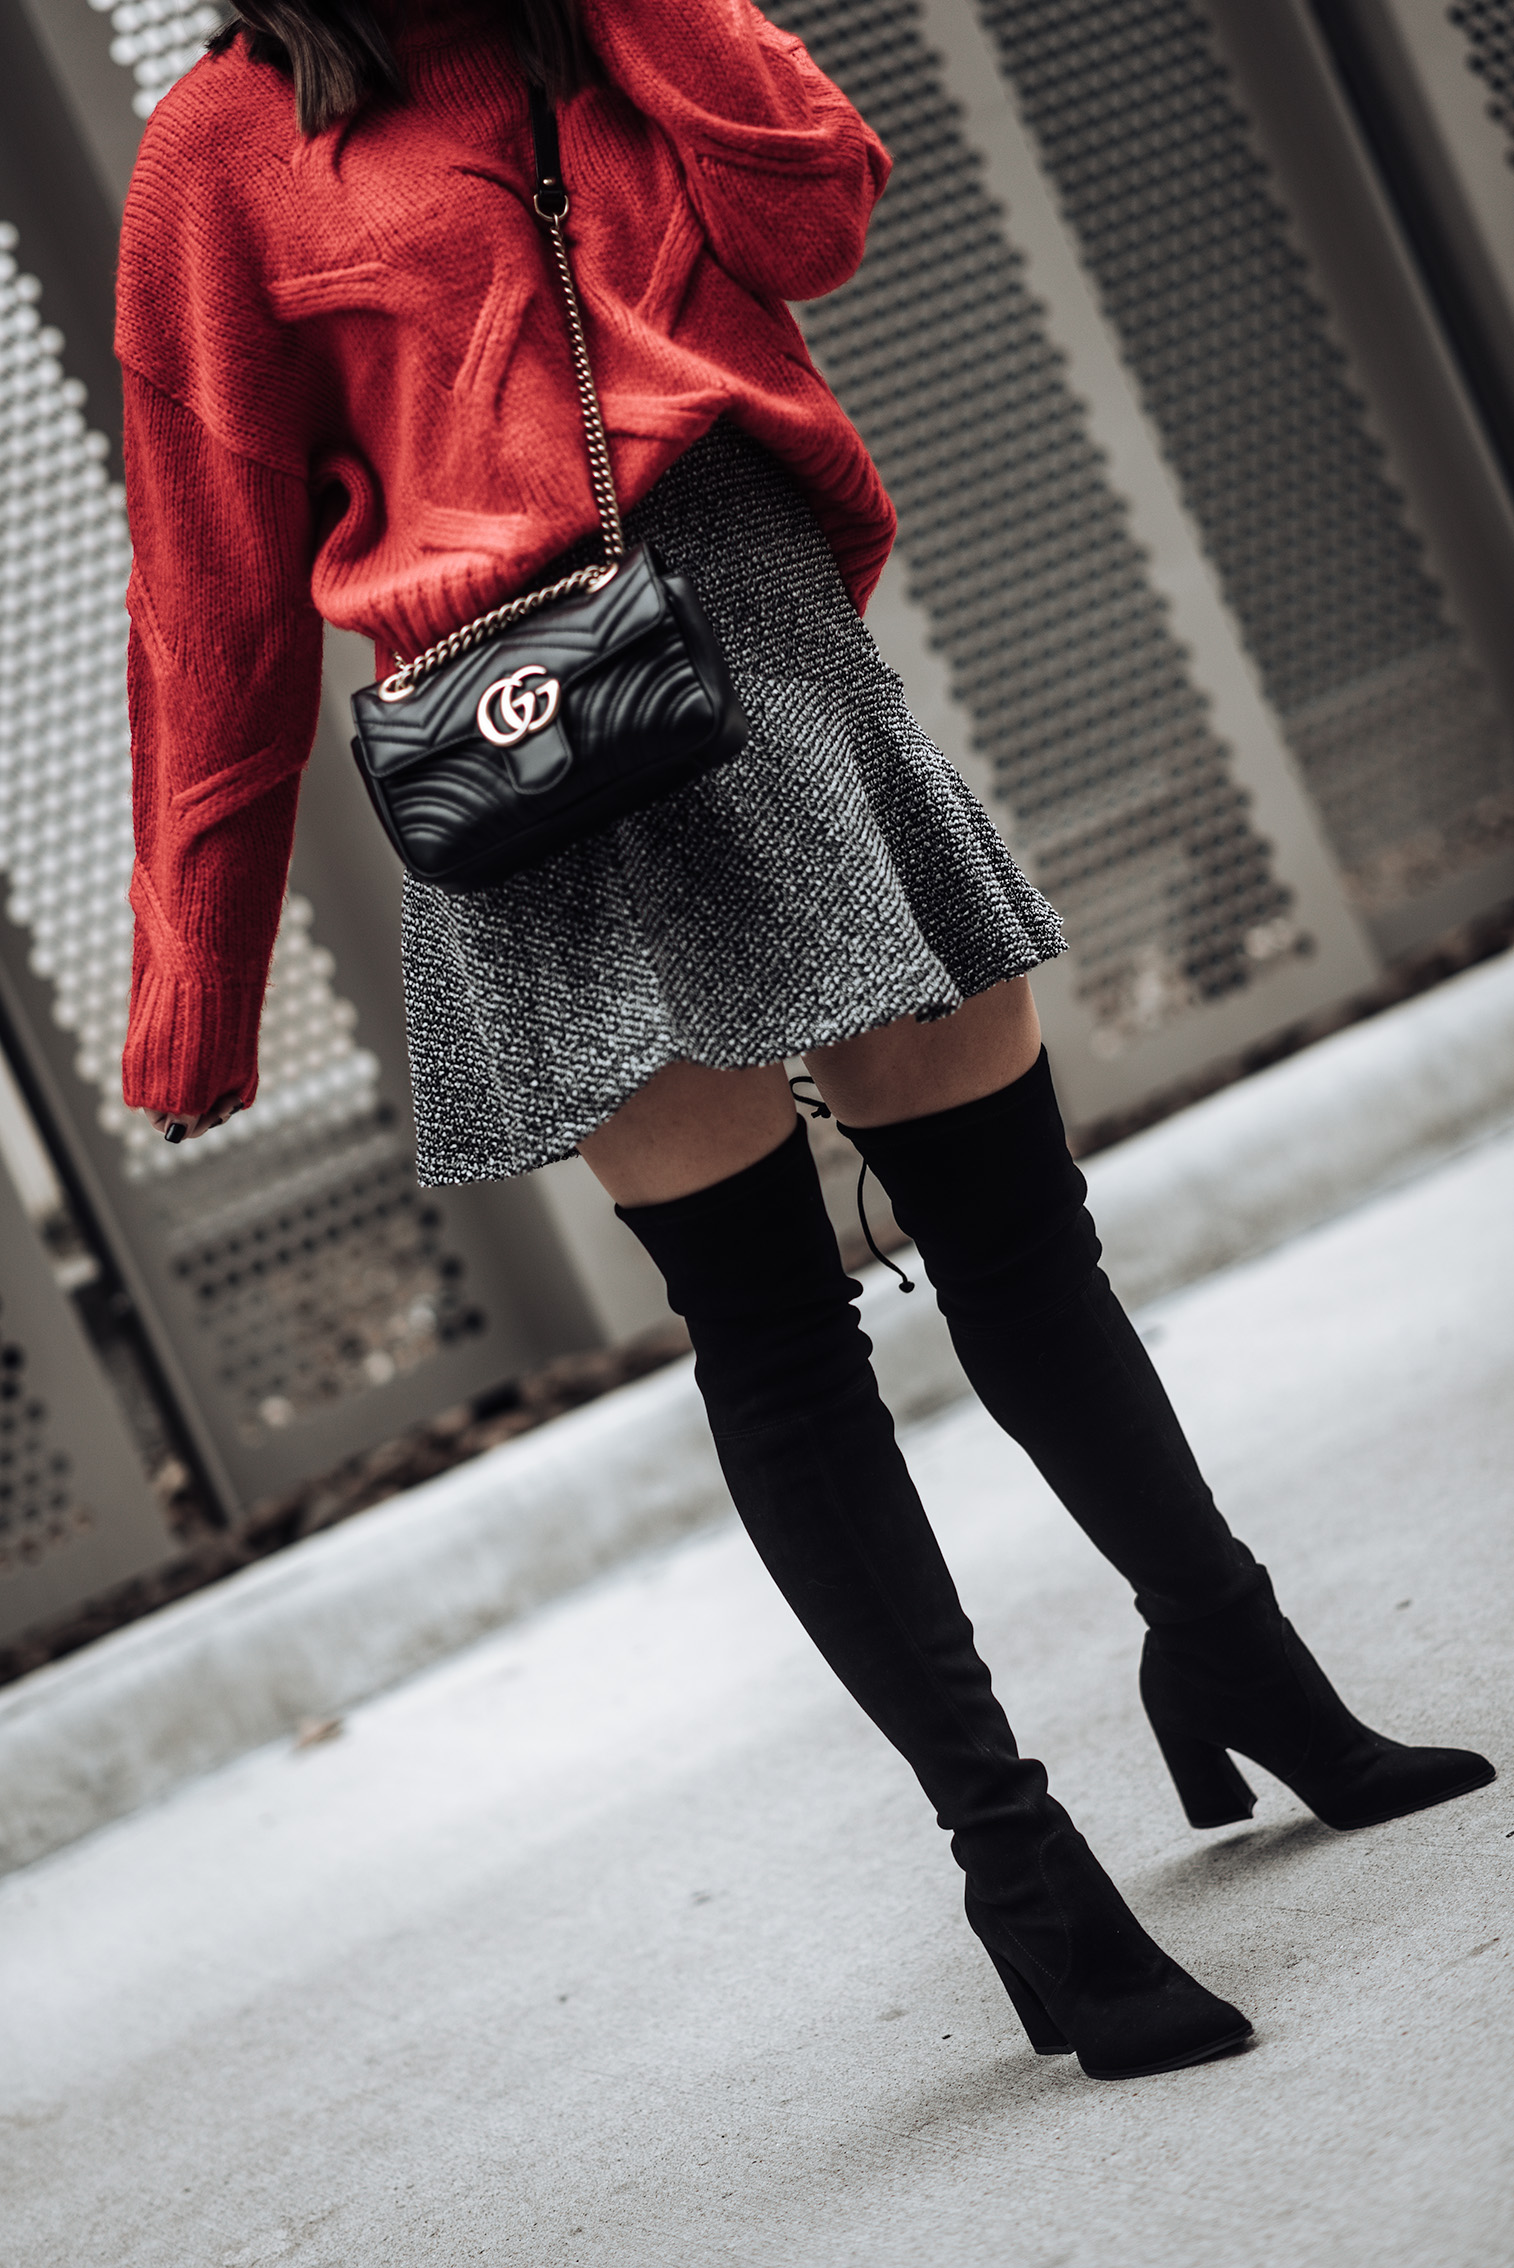 Tiffany Jais fashion and lifestyle blogger of Flaunt and Center | Houston fashion blogger | After Christmas sales | Streetstyle blog | Stuart Weitzman boots